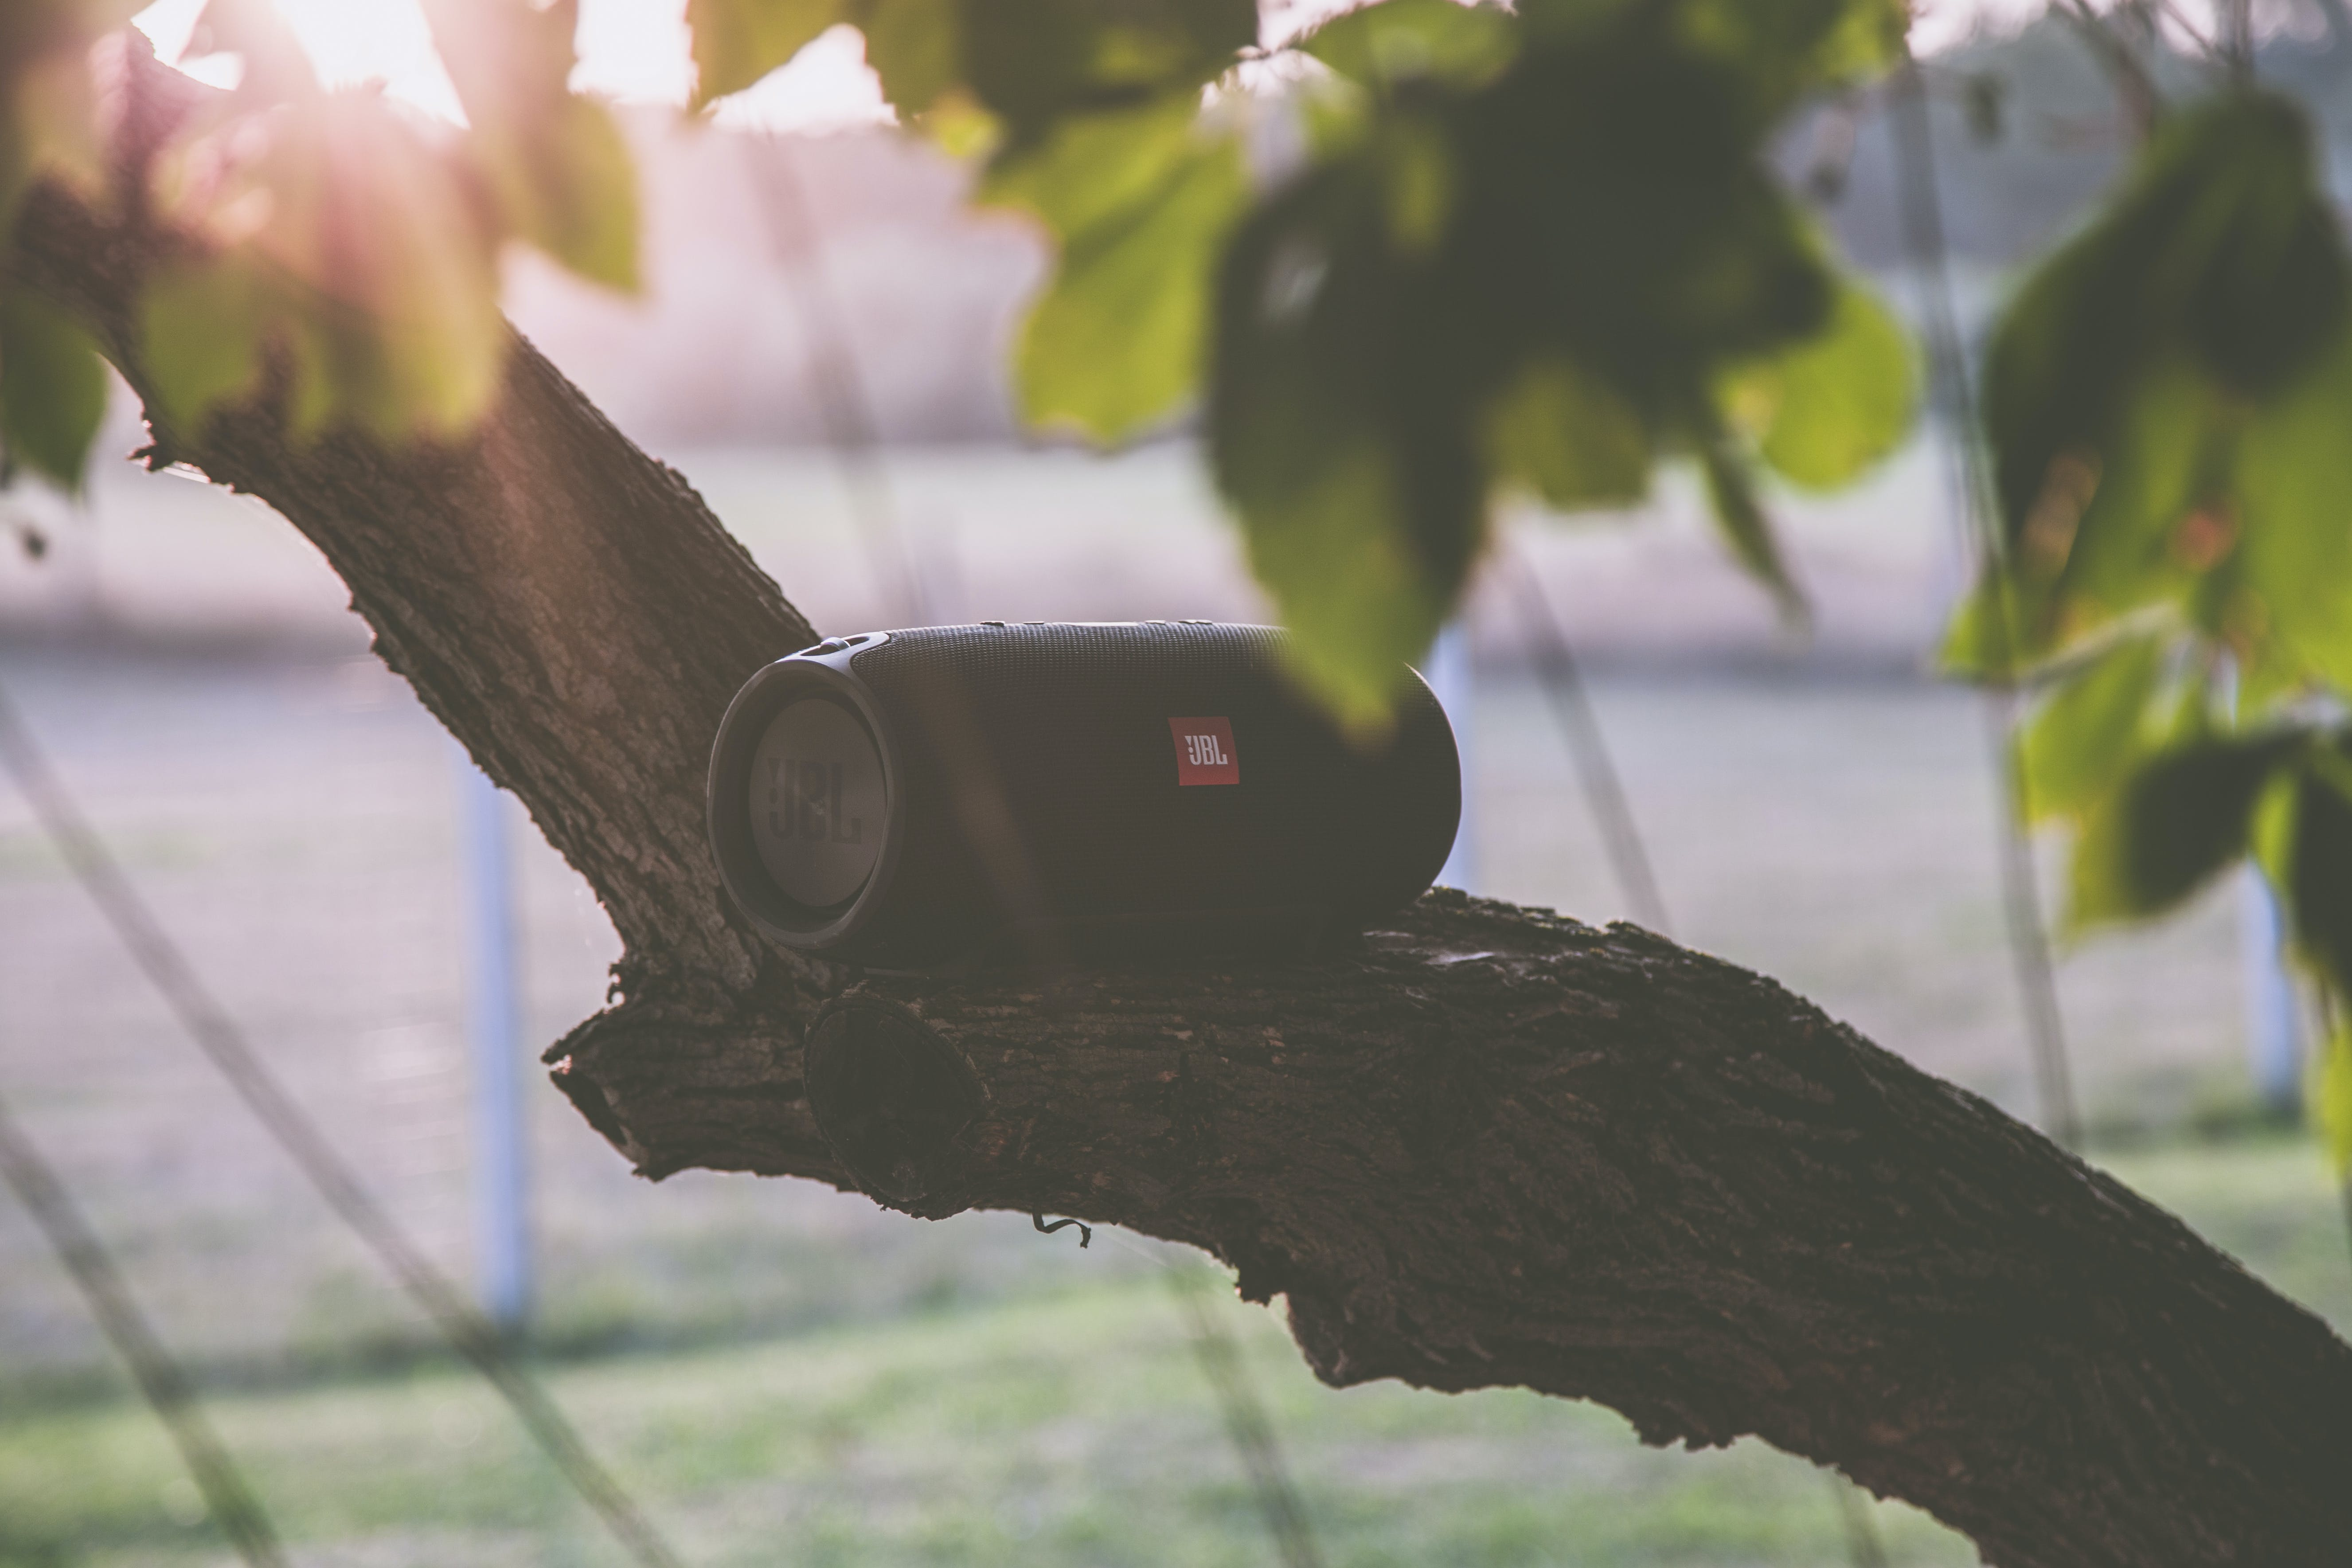 Black Jbl Bluetooth Speaker on Tree Branch